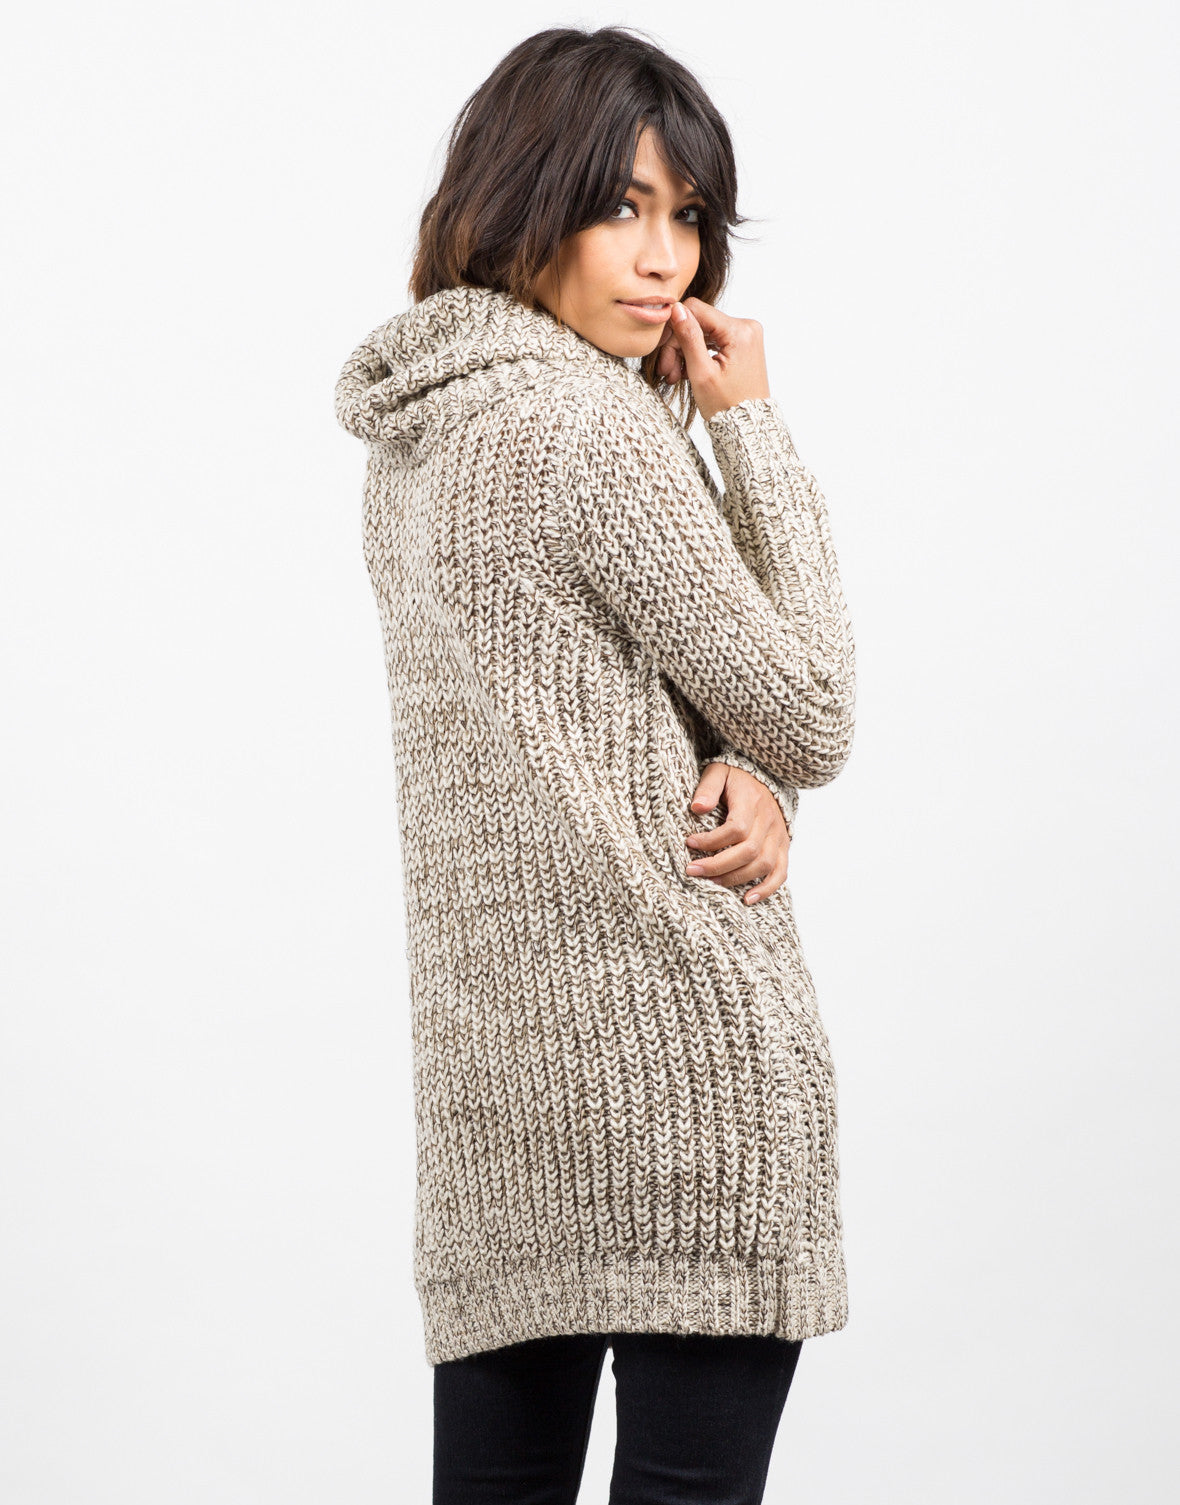 Back View of Cozy Knit Turtleneck Sweater